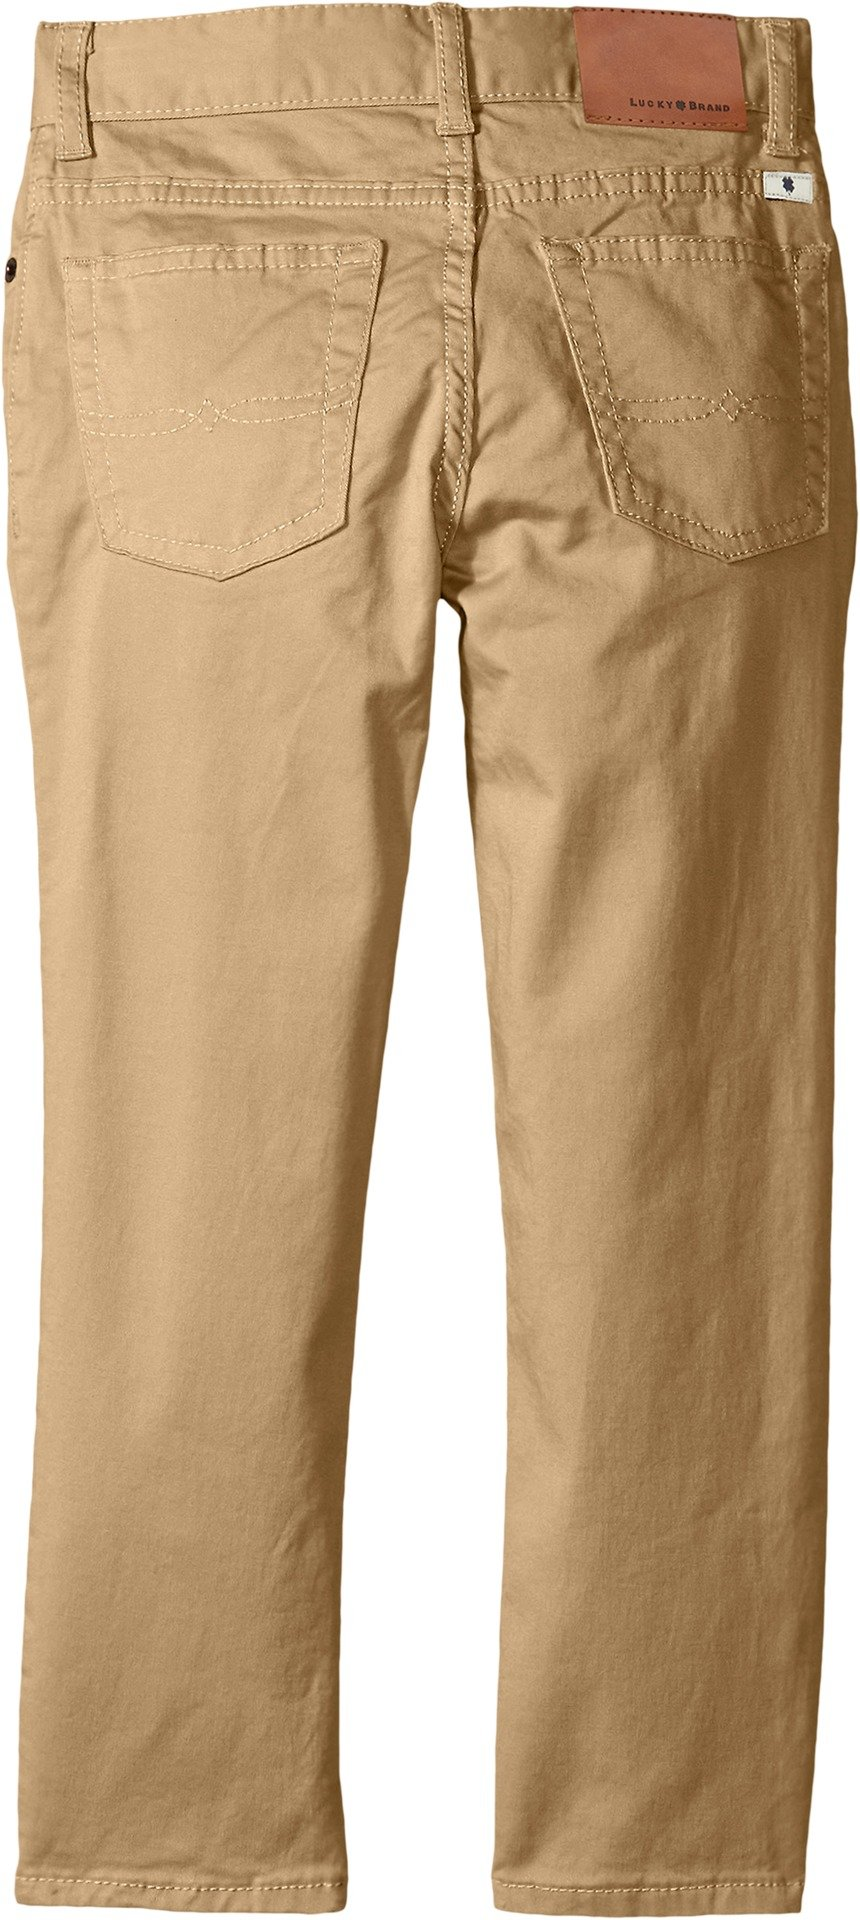 Lucky Brand Toddler Boys' 5 Pocket Stretch Twill Pant, Kelp, 3T by Lucky Brand (Image #2)